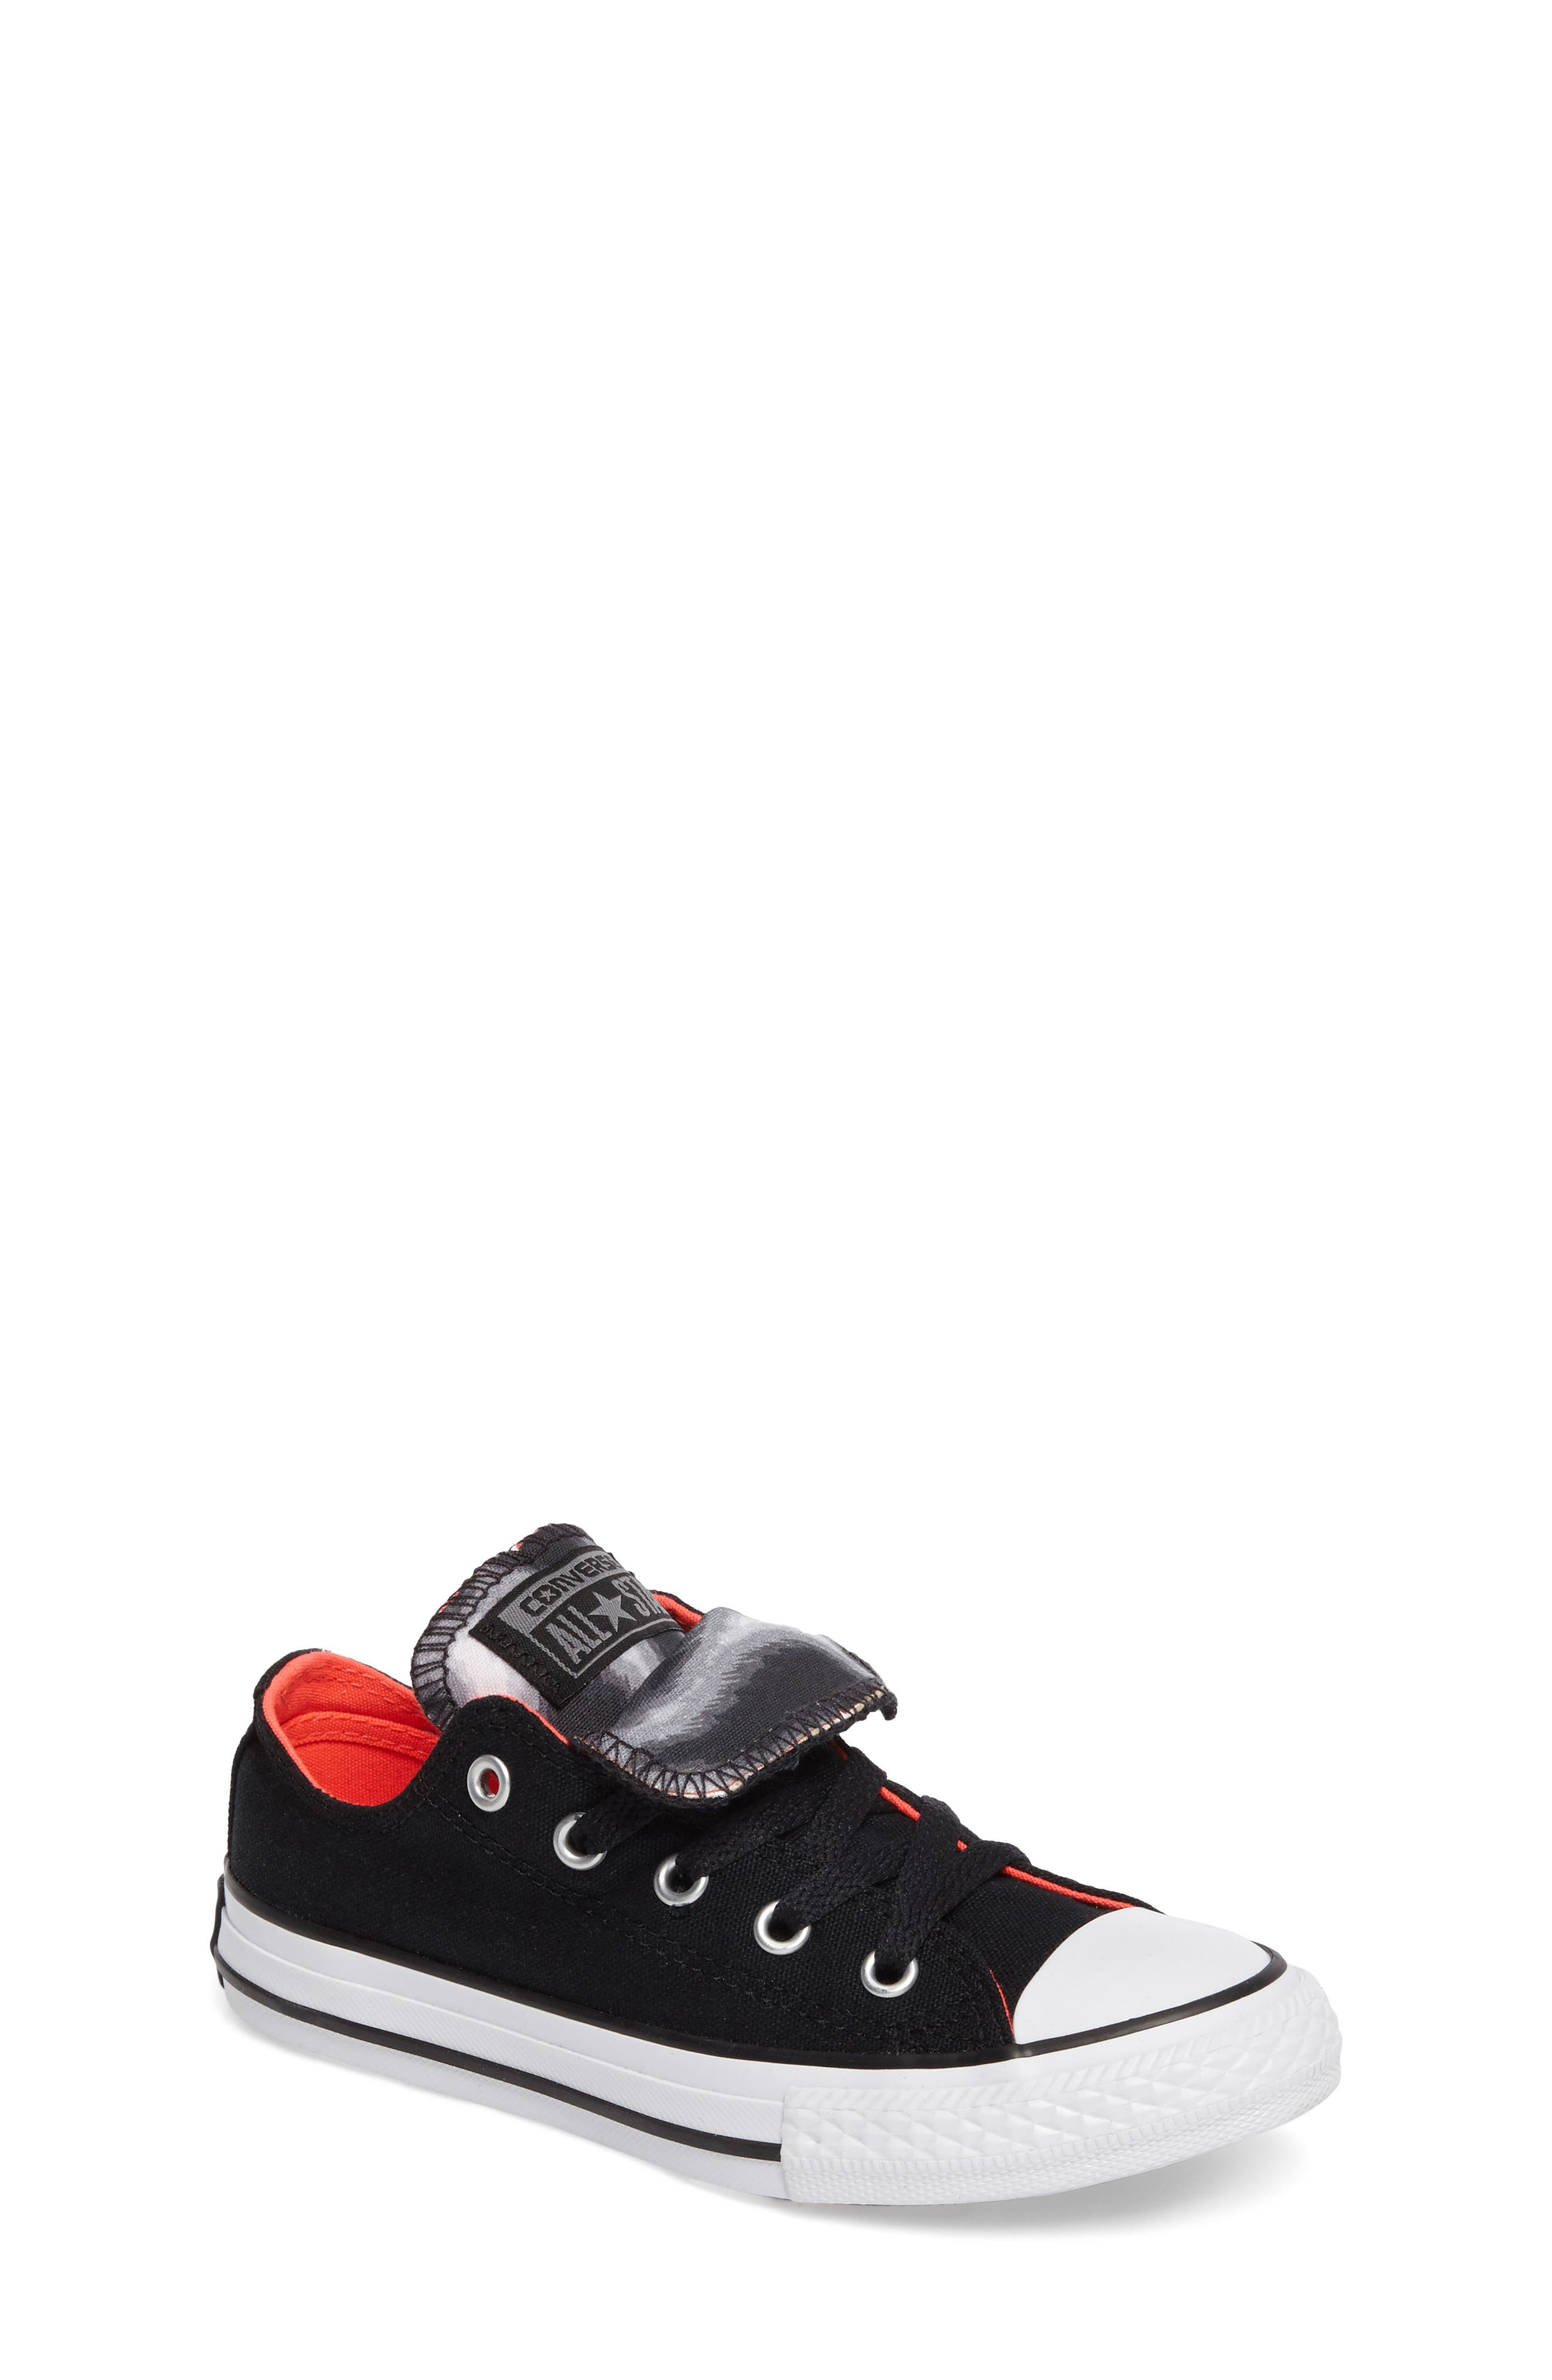 CONVERSE All Star<sup>®</sup> Double Tongue Sneaker